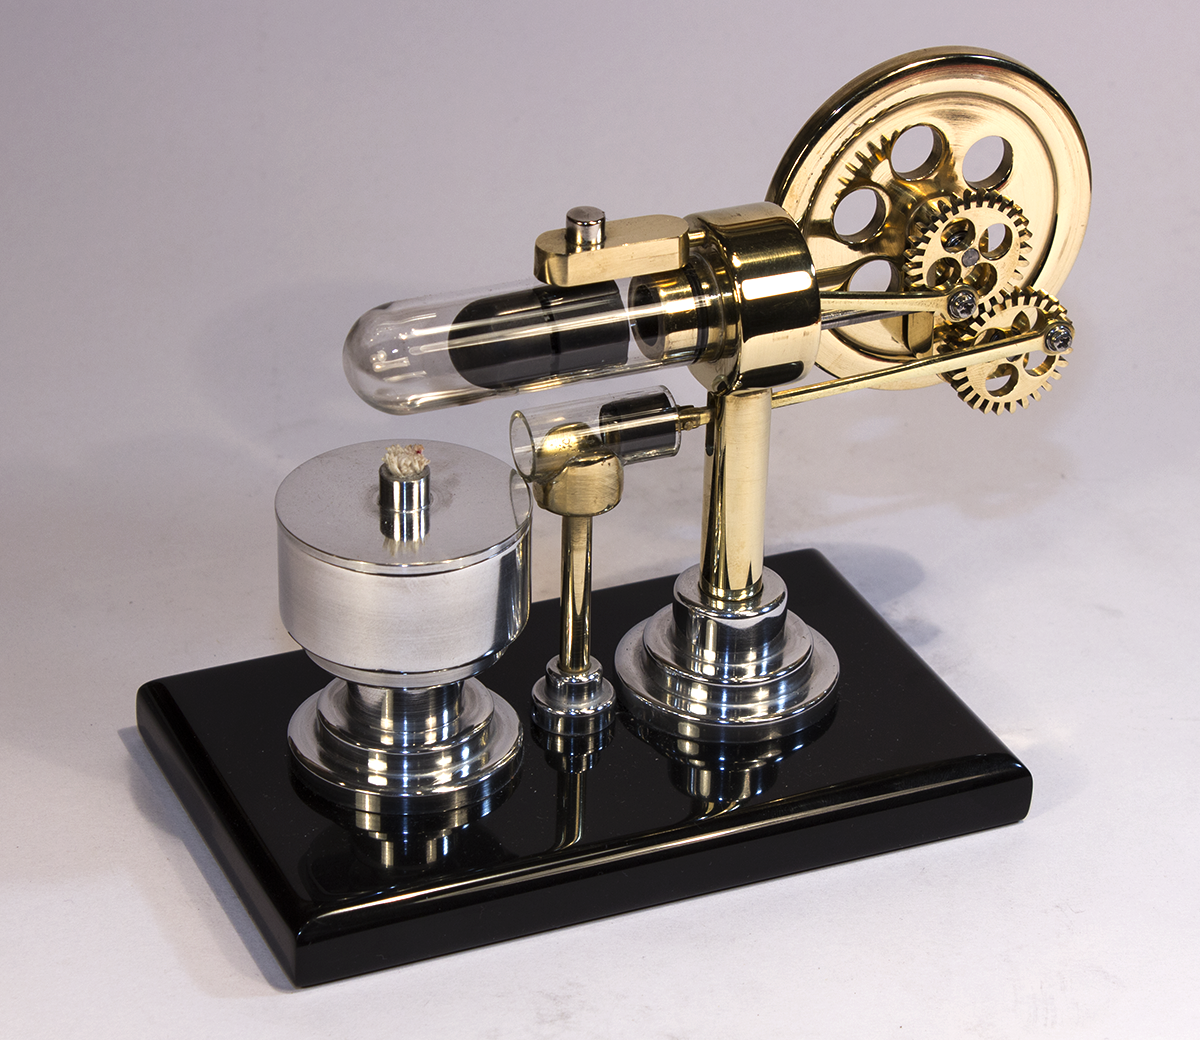 Aces Dev further Engine further Fd Ae C E Bdf A Max in addition Solarstirlingfeatured in addition Px Beta Stirling Animation. on stirling engine design